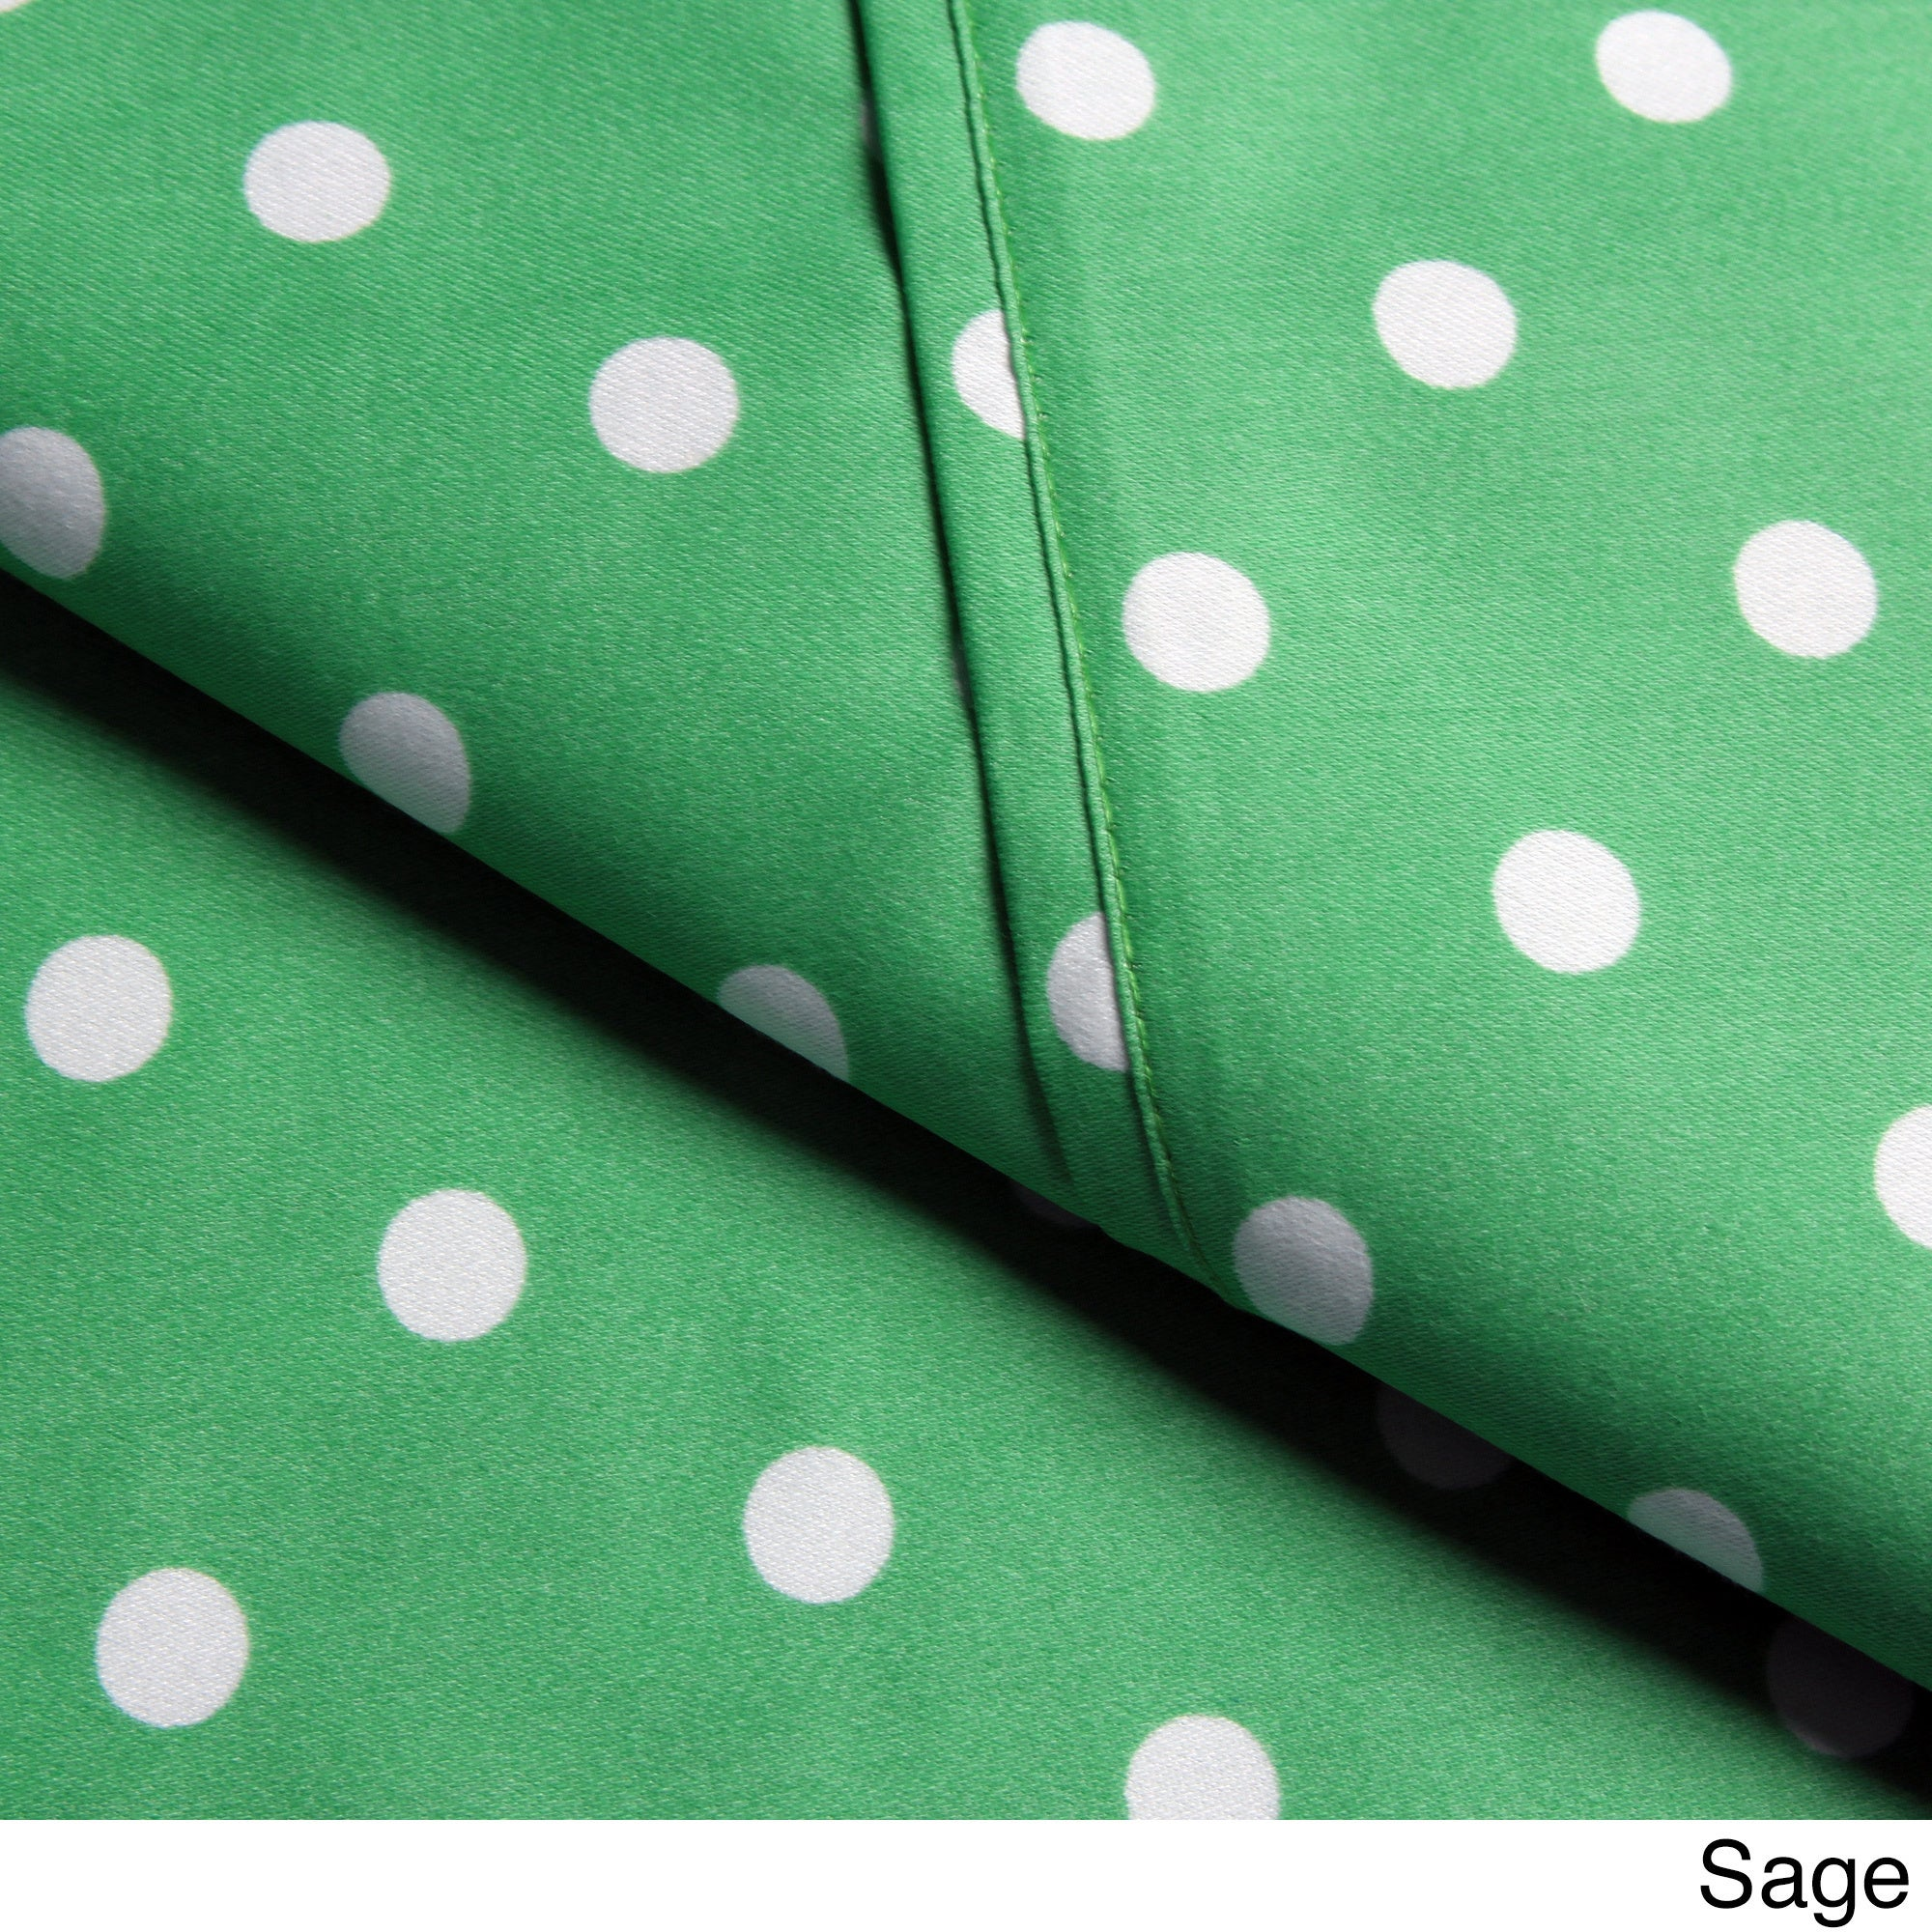 Superior 600 Thread Count Deep Pocket Polka Dot Cotton Blend Sheet Set Free Shipping On Orders Over 45 9017863